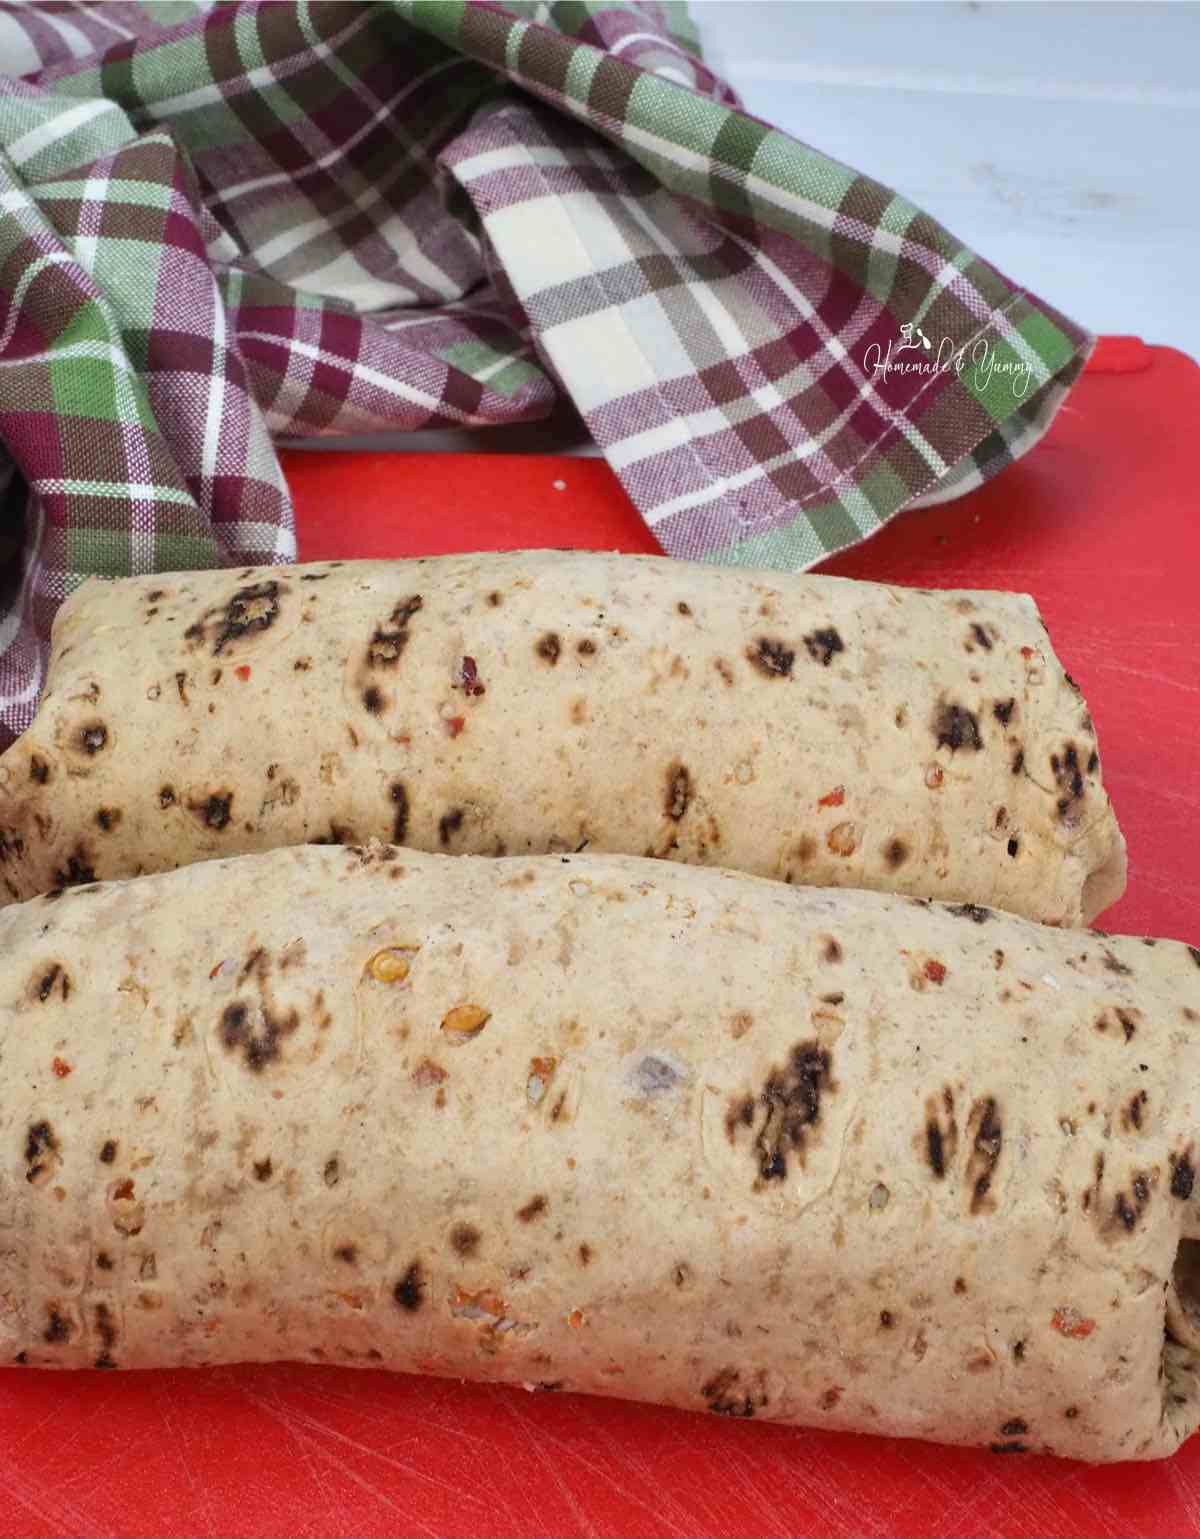 Tortilla wrap finished and ready to cut.